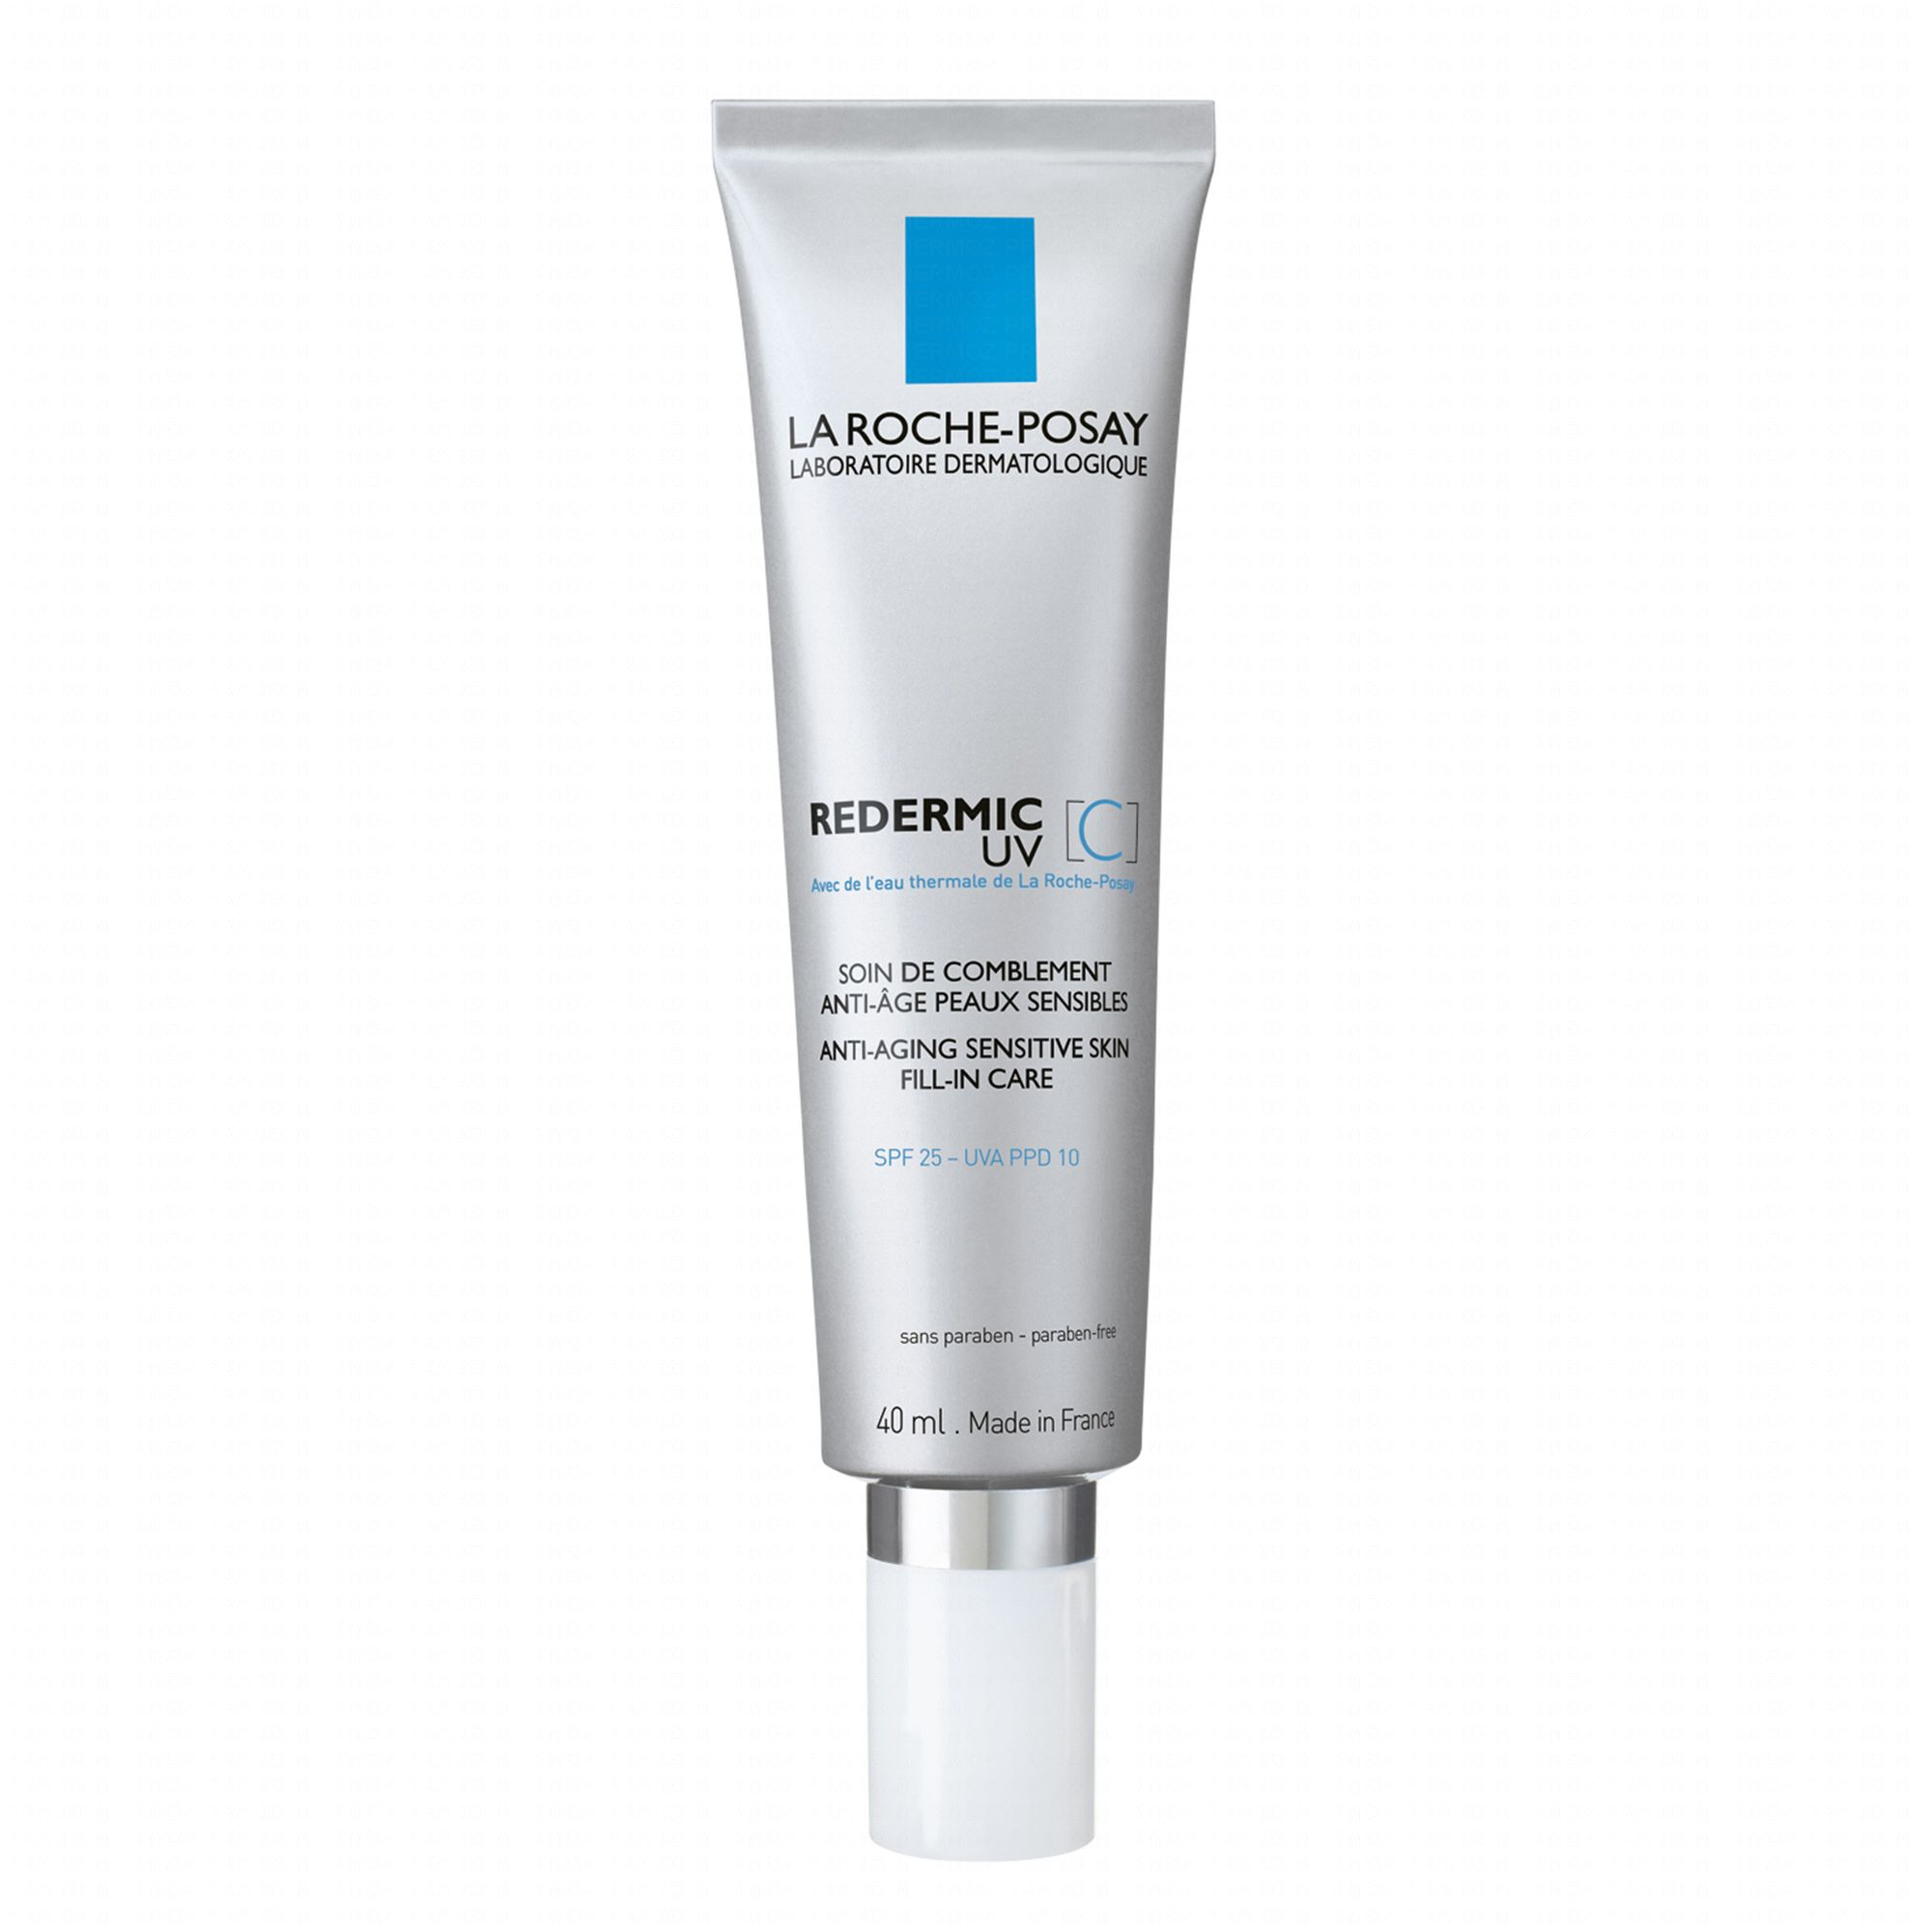 la roche posay redermic c uv spf25 tube 40ml la roche posay parapharmacie en ligne prado mermoz. Black Bedroom Furniture Sets. Home Design Ideas